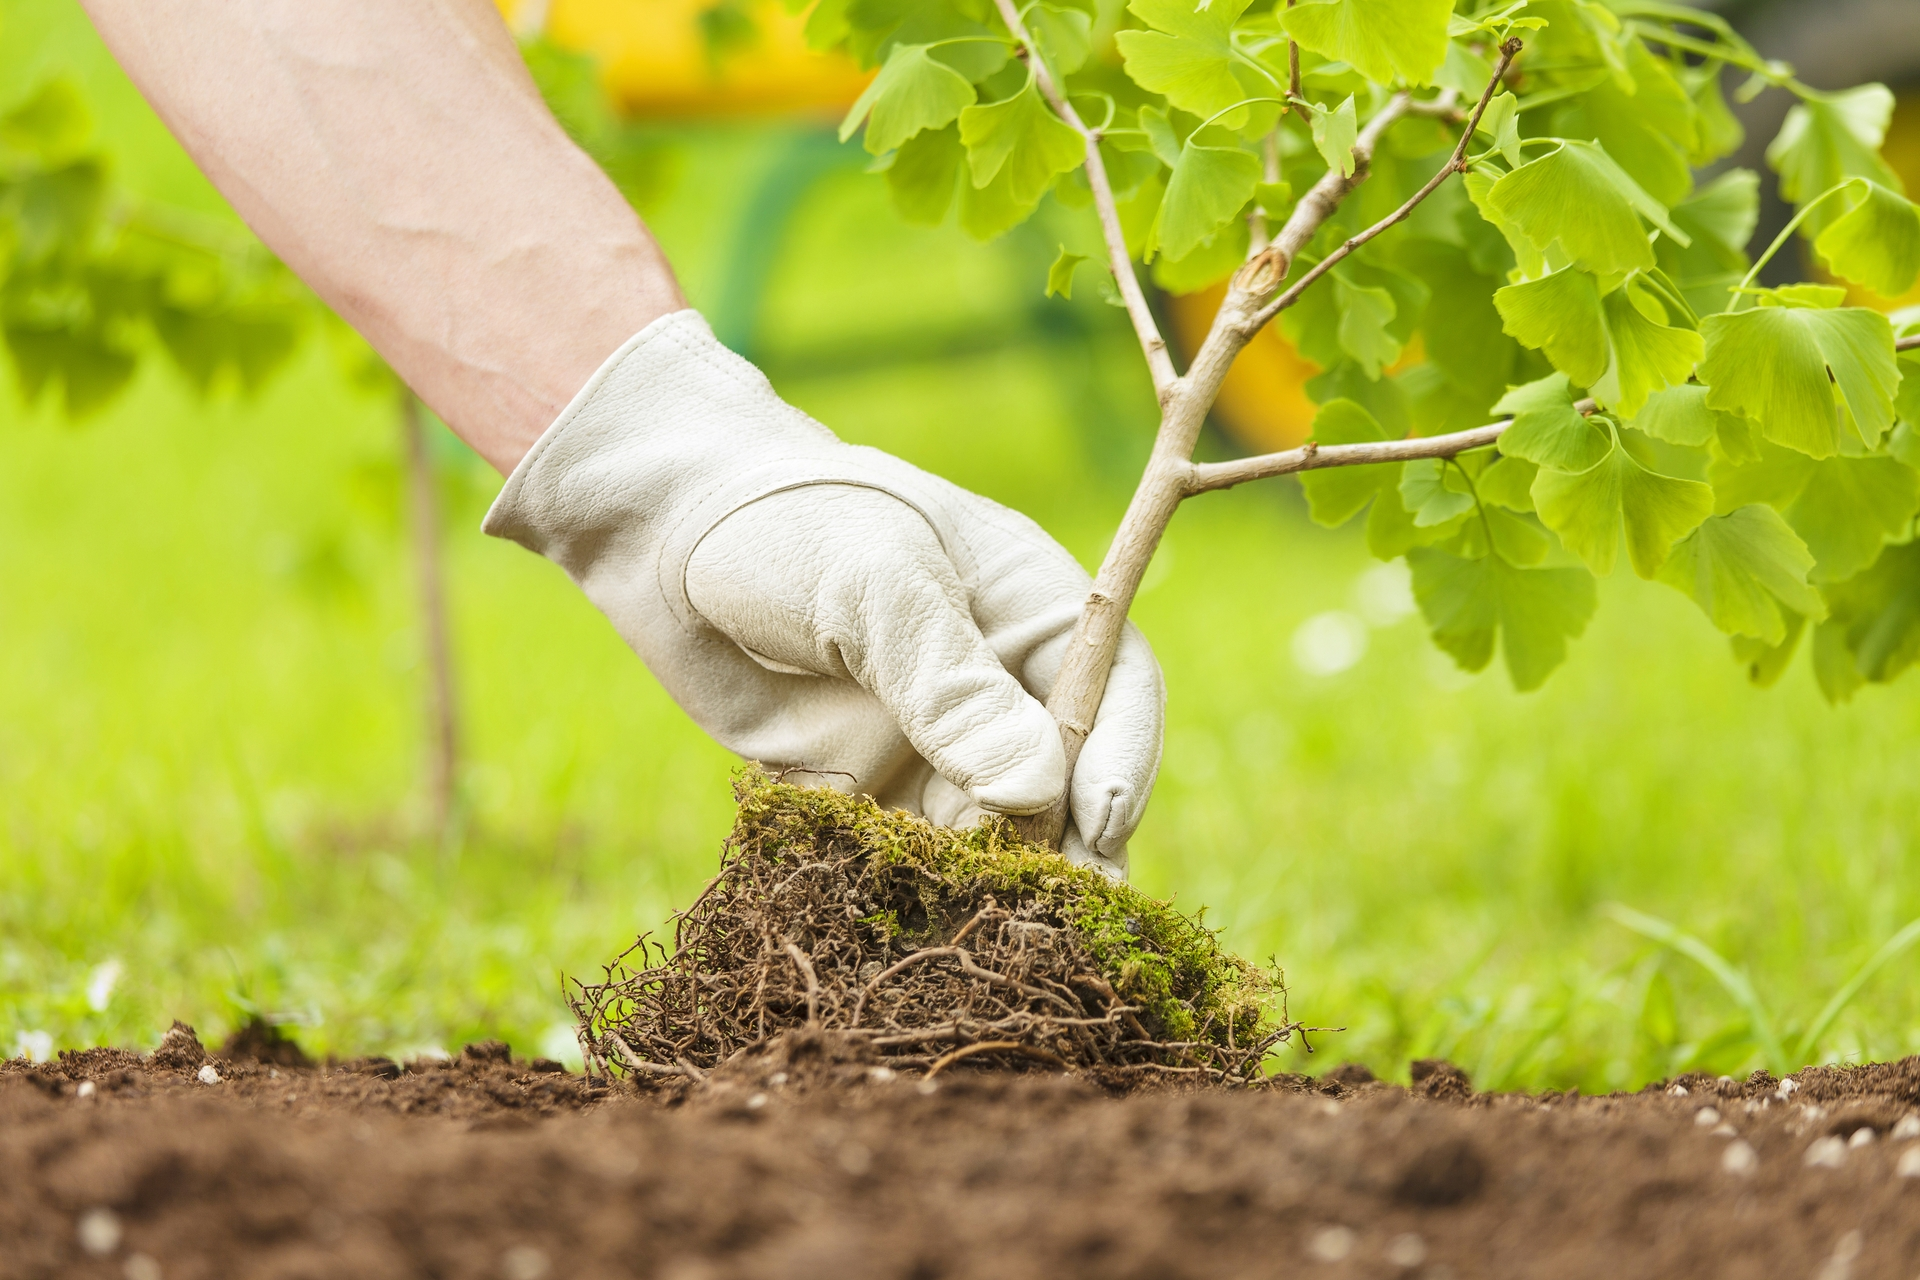 Trees are chosen to succeed in specific locations based on their eventual size and water consumption, among other factors.